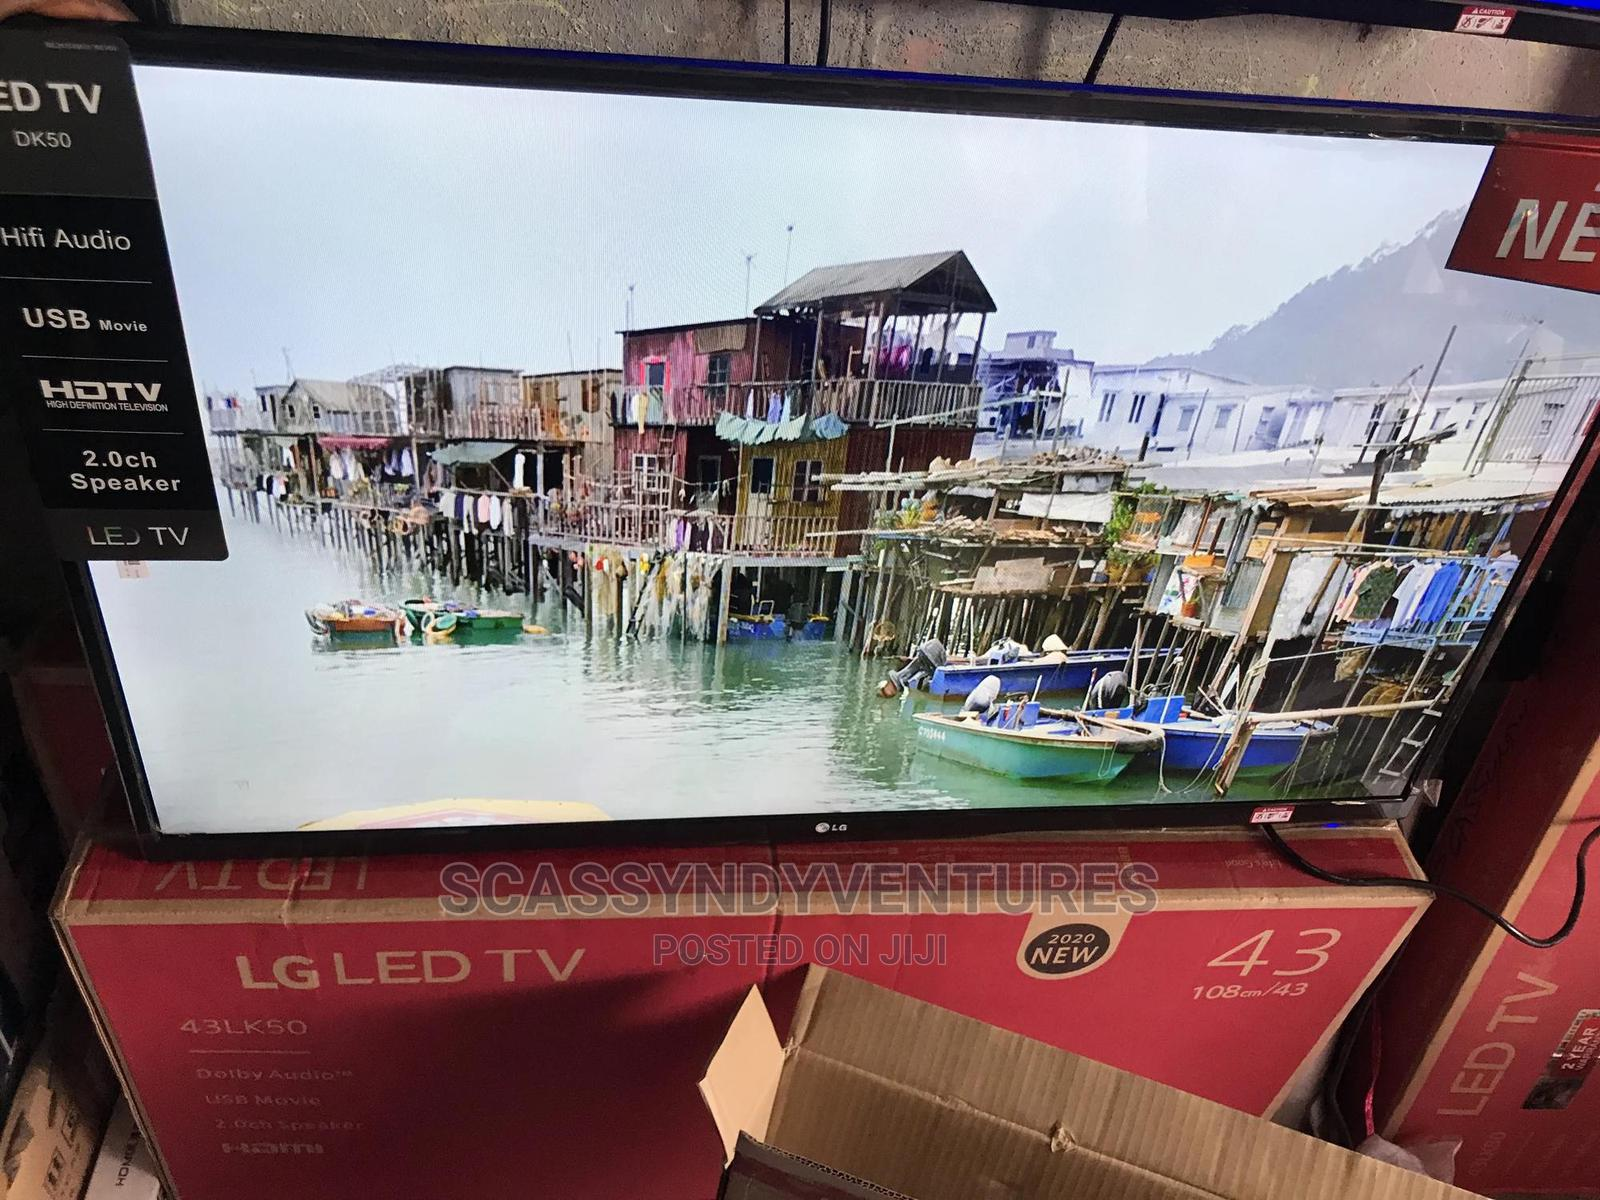 Brand New LG TV 43inches LED Full HD | TV & DVD Equipment for sale in Port-Harcourt, Rivers State, Nigeria